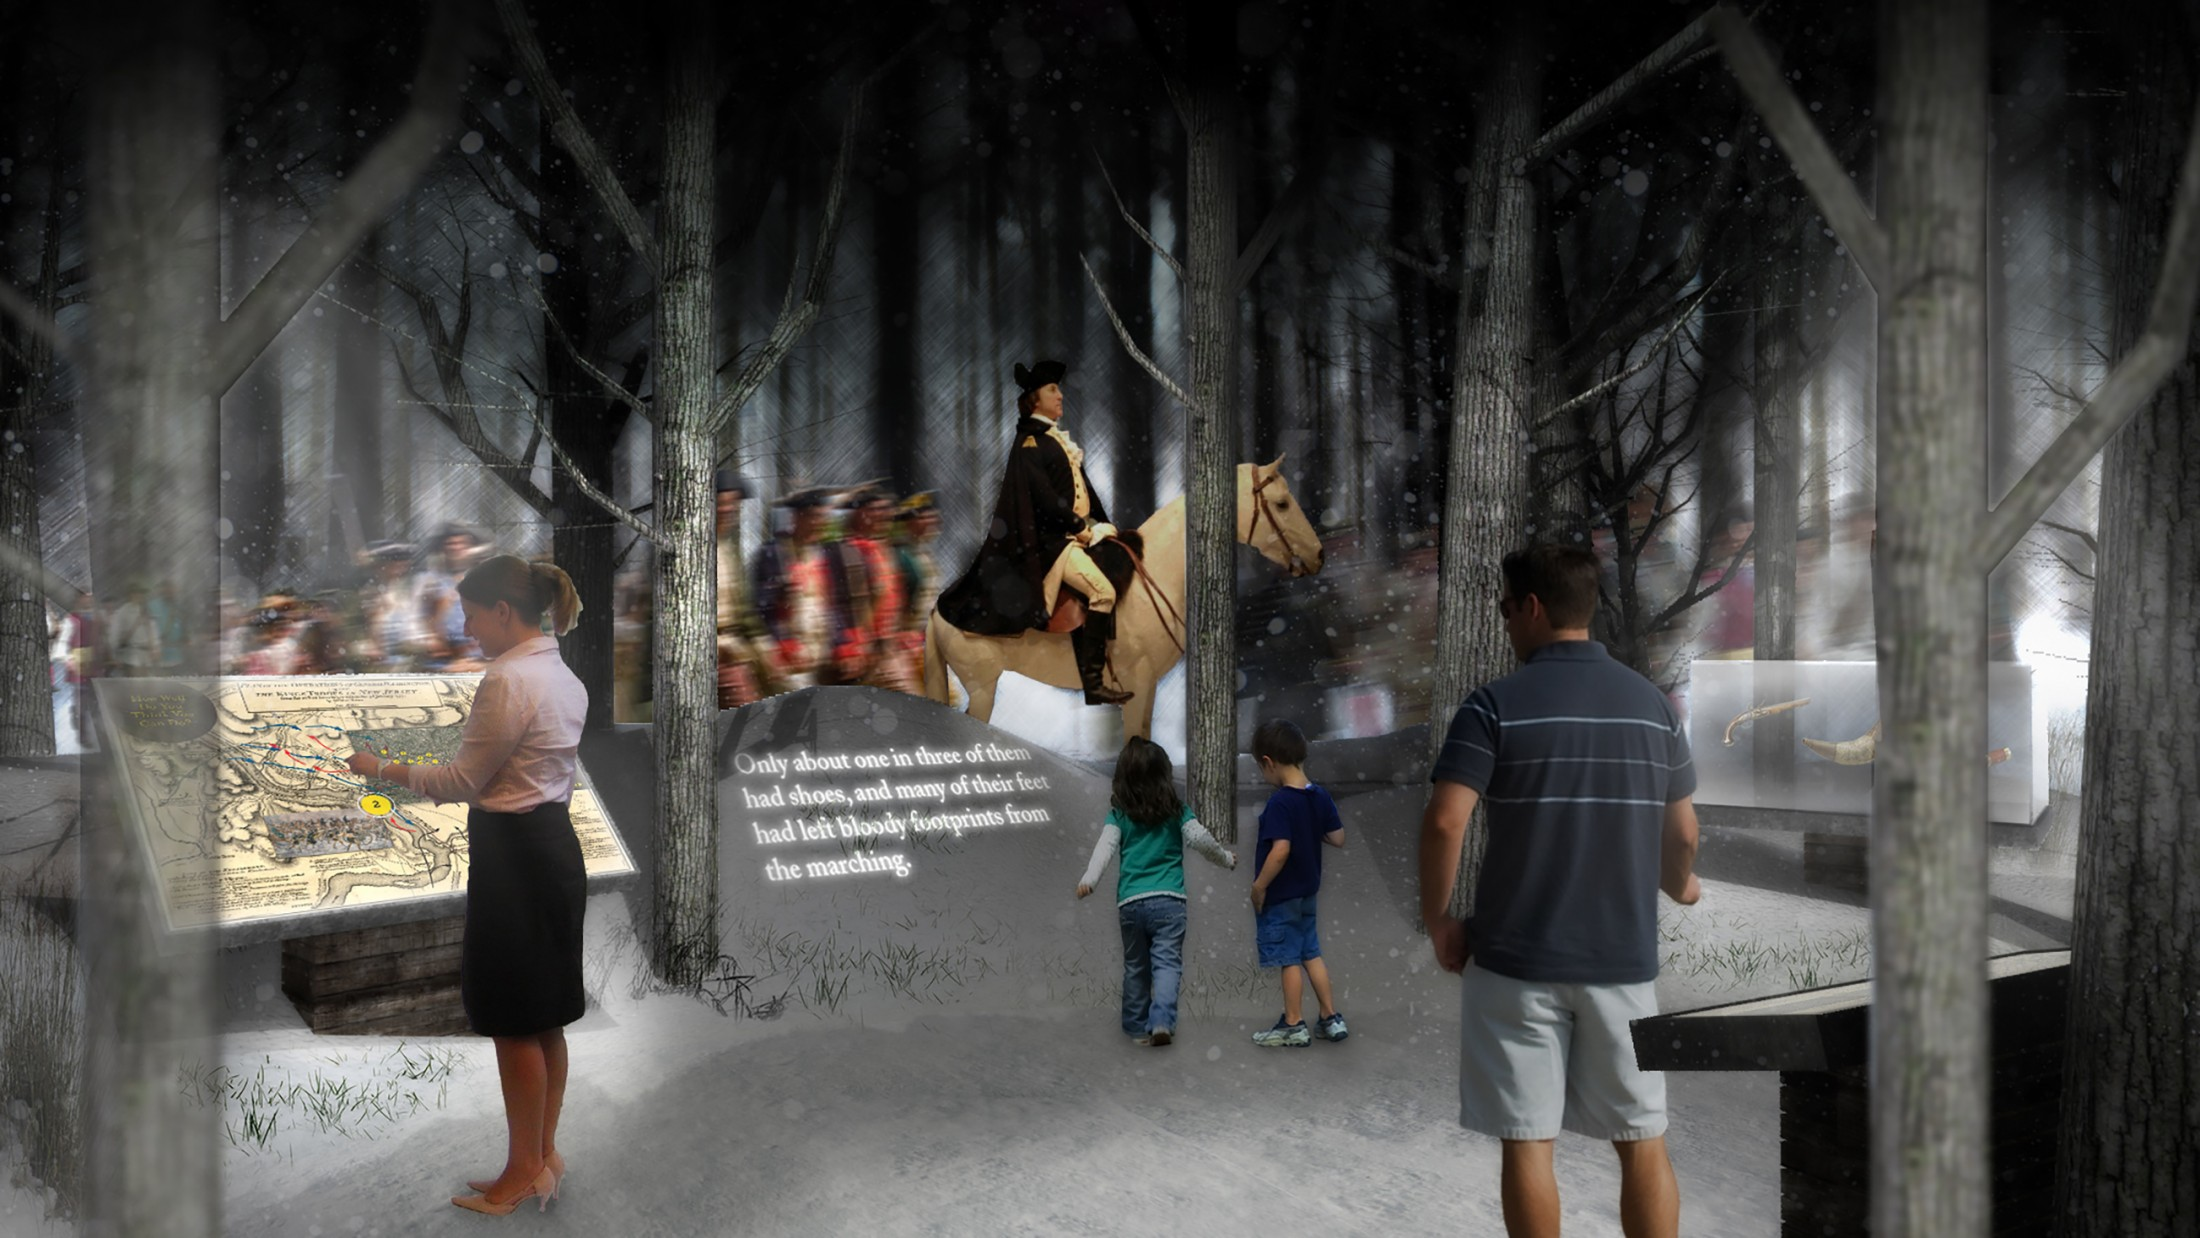 Mount Vernon Estate Orientation Center Gallery Concept: Valley Forge March